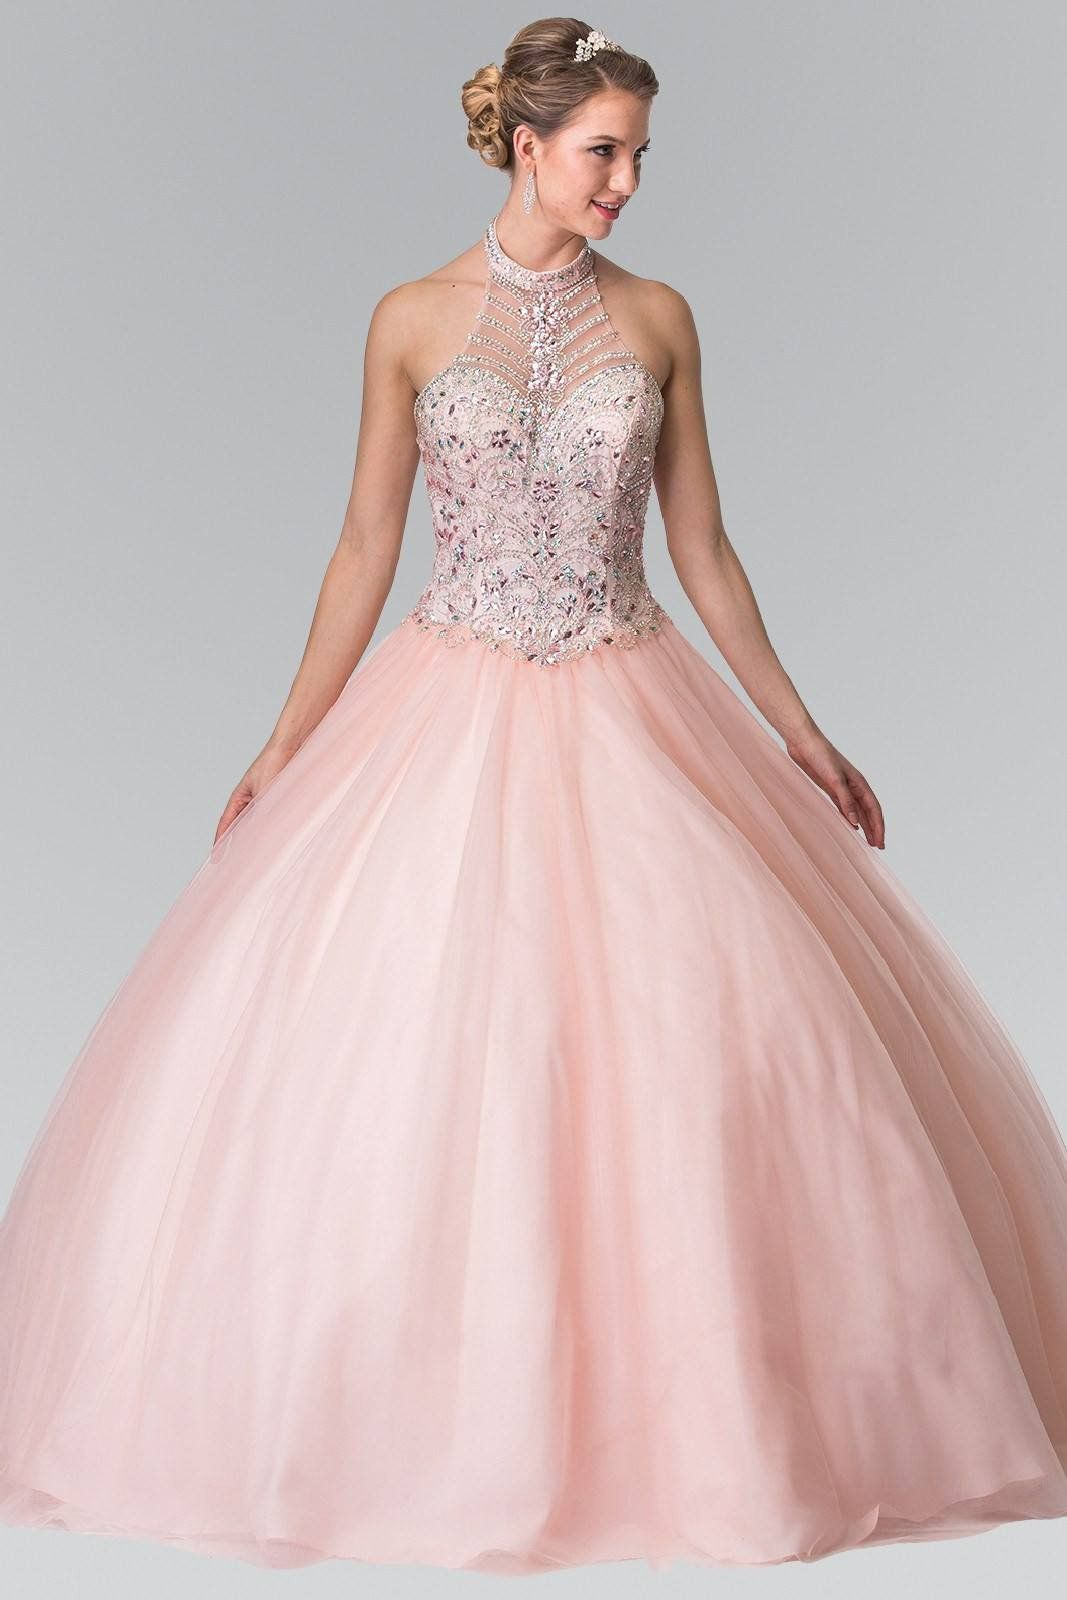 a56e8334a27 Sheer illusion high neckline full rhinestone beaded bodice Ballgown prom  dress and Quinceanera sweet 15 dress. Featuring embroidered appliques  throughout ...